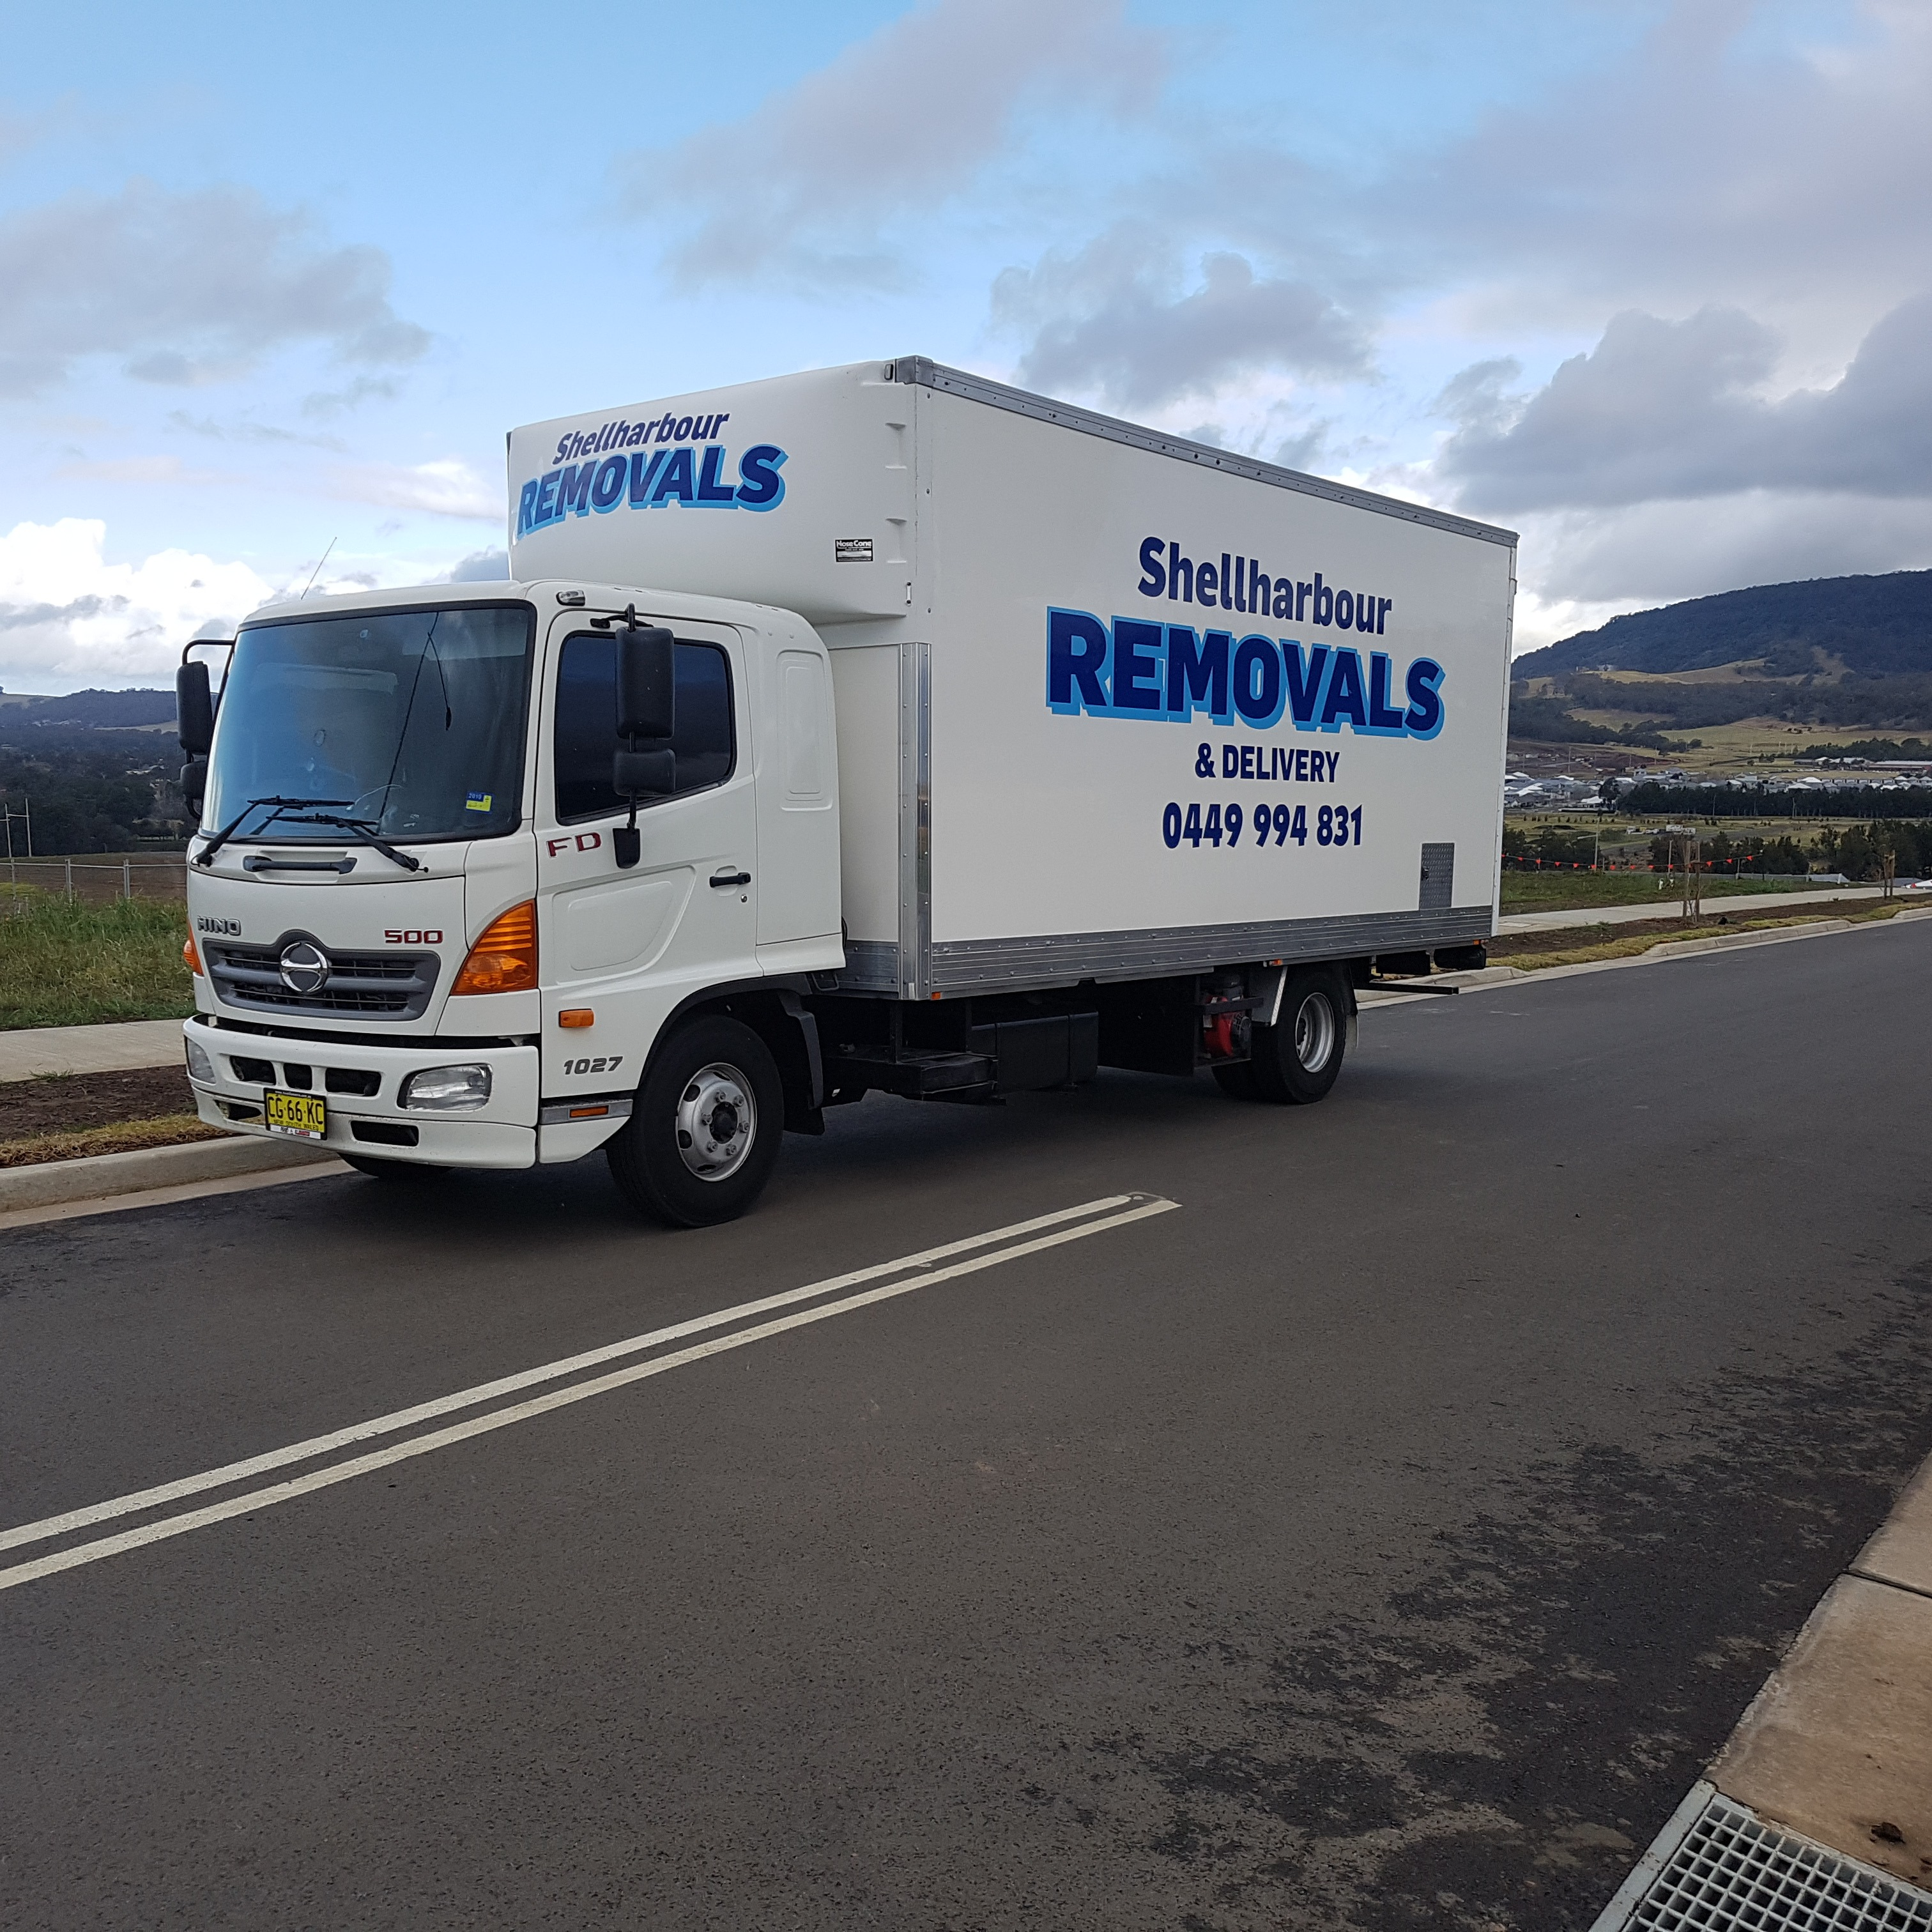 Shellharbour removals and deliverys